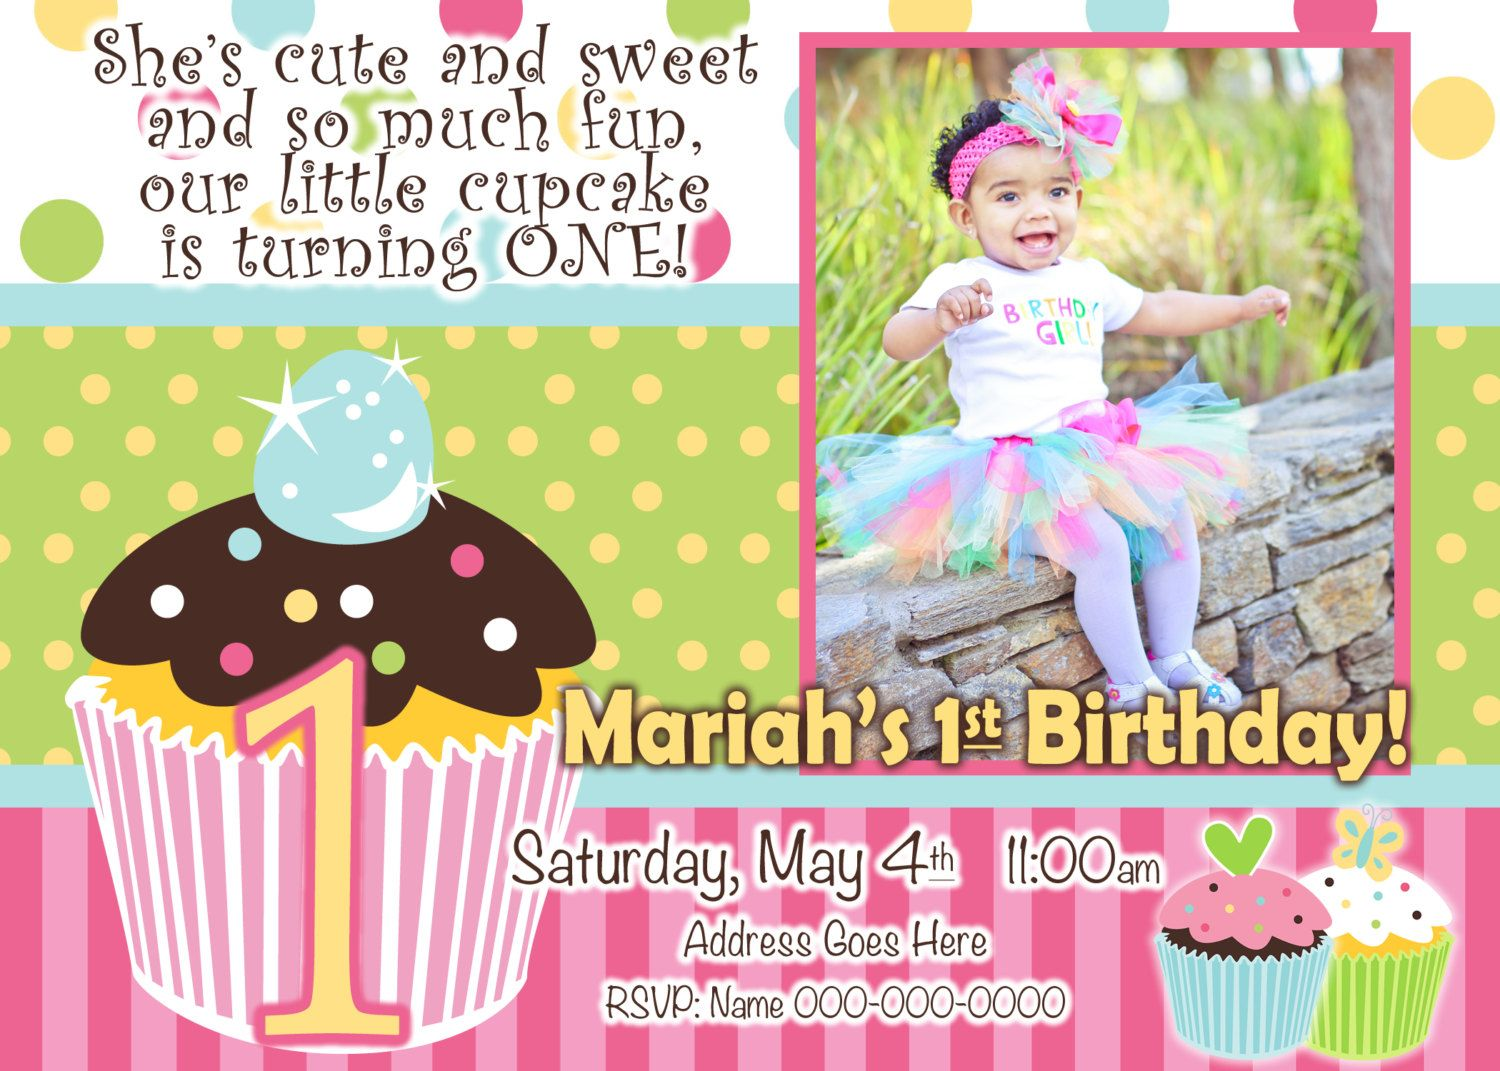 Cupcake invite birthday party sweet treats by jrcreativedesigns cupcake invite birthday party sweet treats by jrcreativedesigns 1799 filmwisefo Gallery